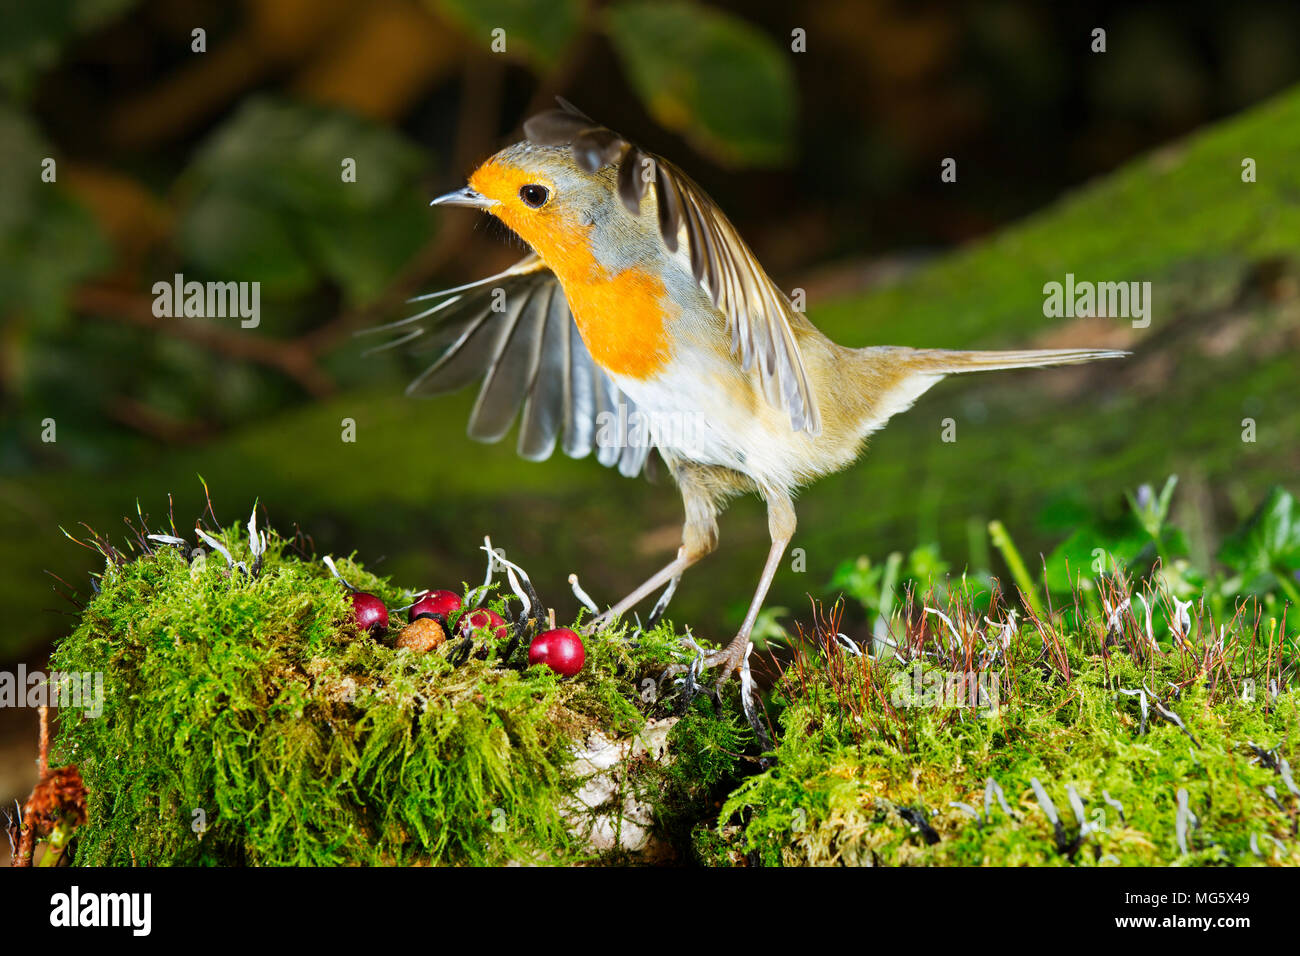 A Robin (Erithacus rubecula) coming into land in a garden in Devon UK - Stock Image